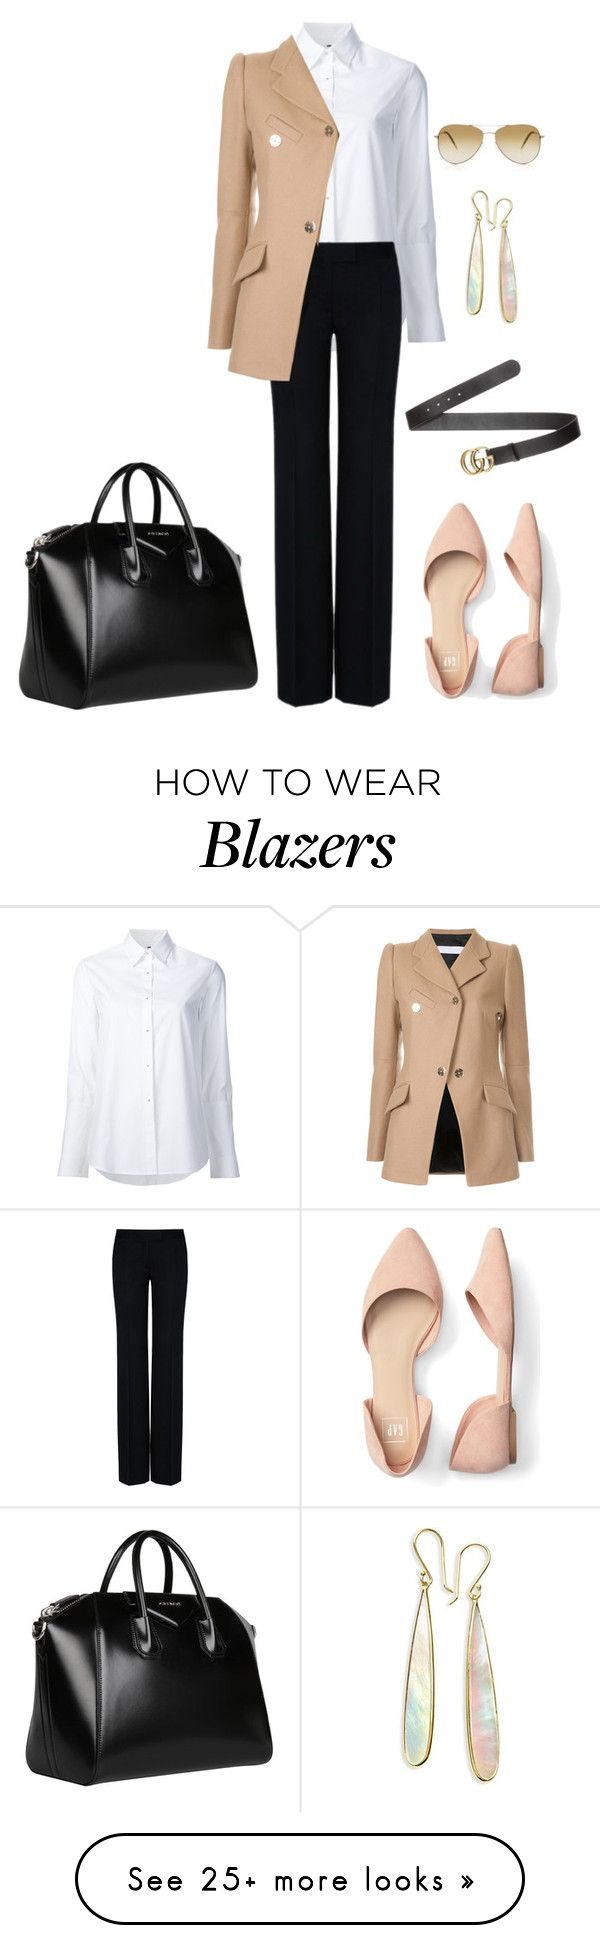 """""""Casual classic"""" by nekopazzta on Polyvore featuring Misha ..."""